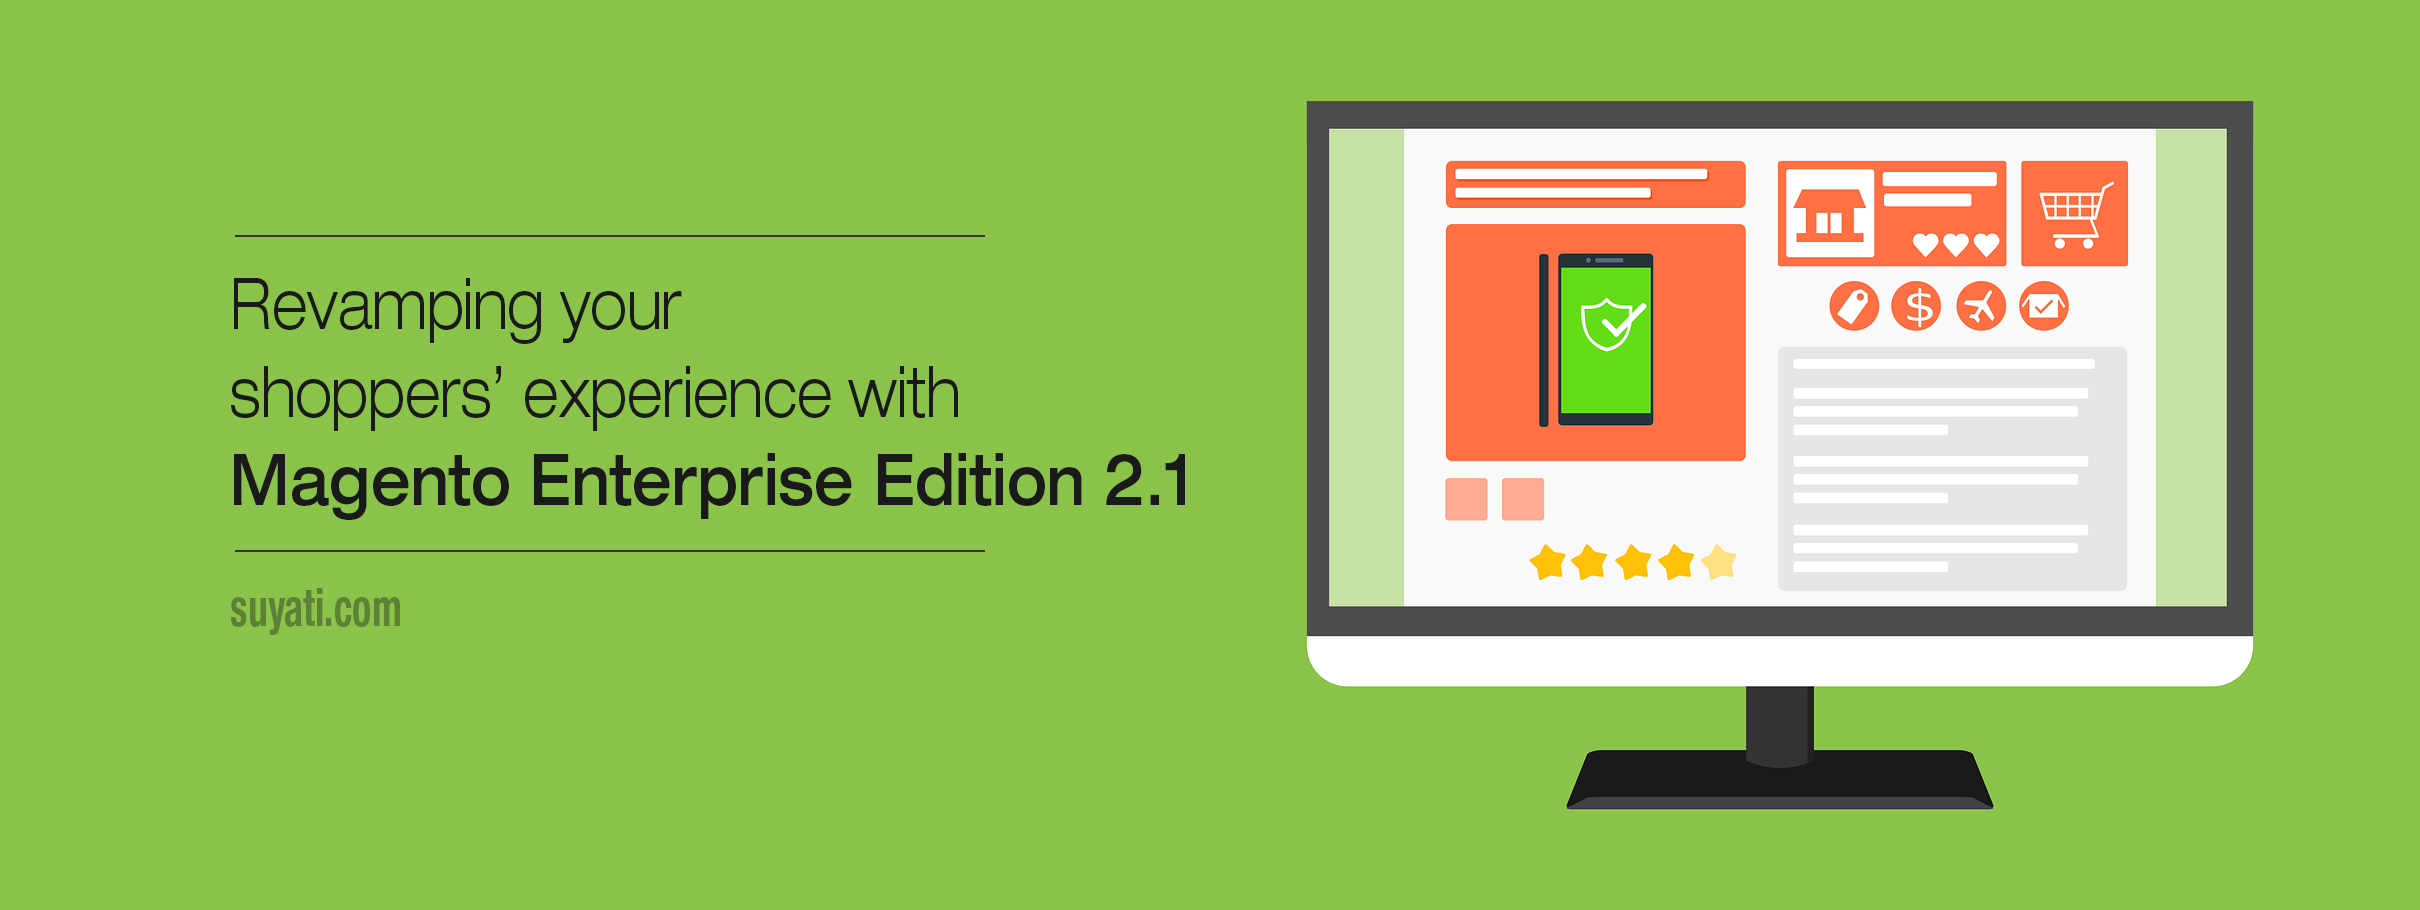 enterprise-edition-2.1-the-latest-edition-by-magento